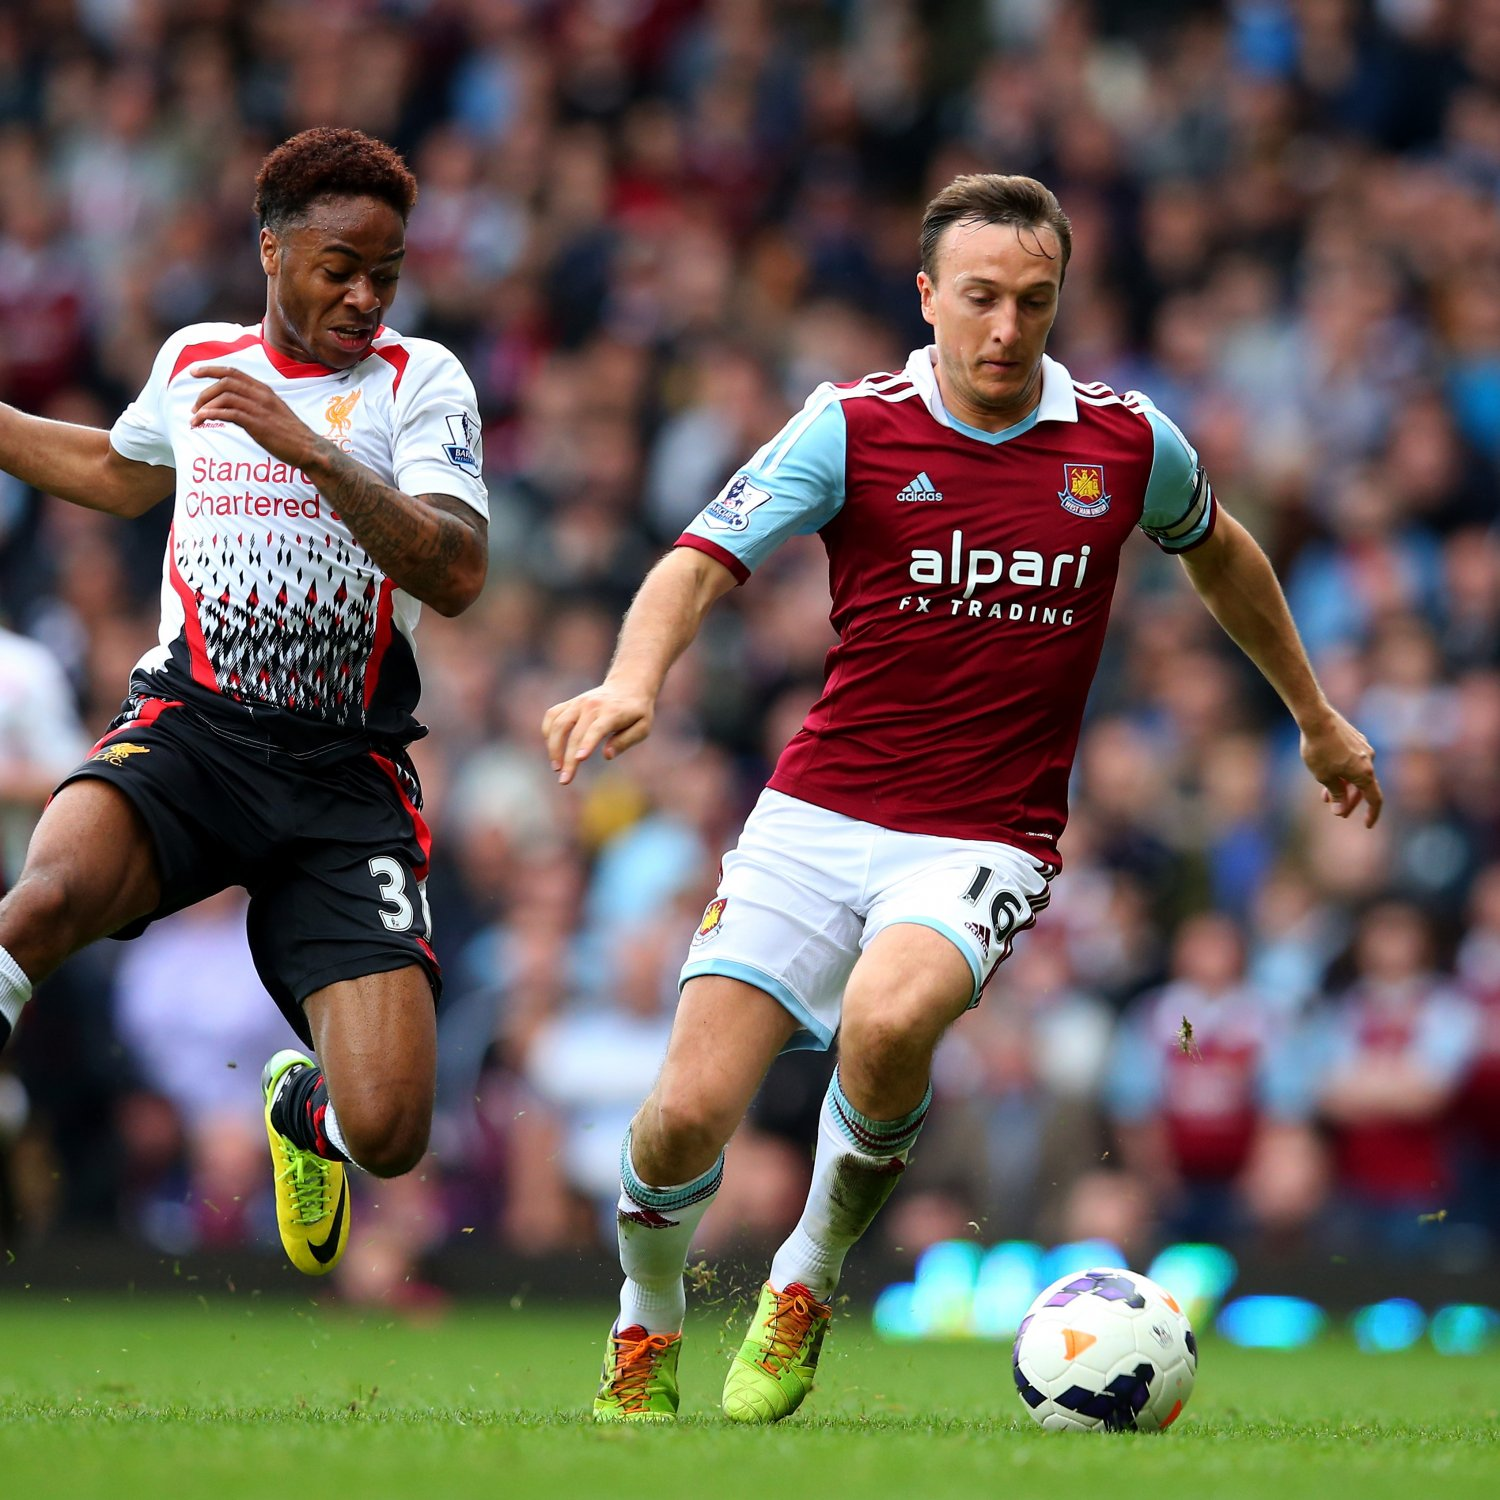 West Ham Vs Liverpool Team News Kick Off Time Probable: West Ham Vs. Liverpool: Live Score, Highlights From